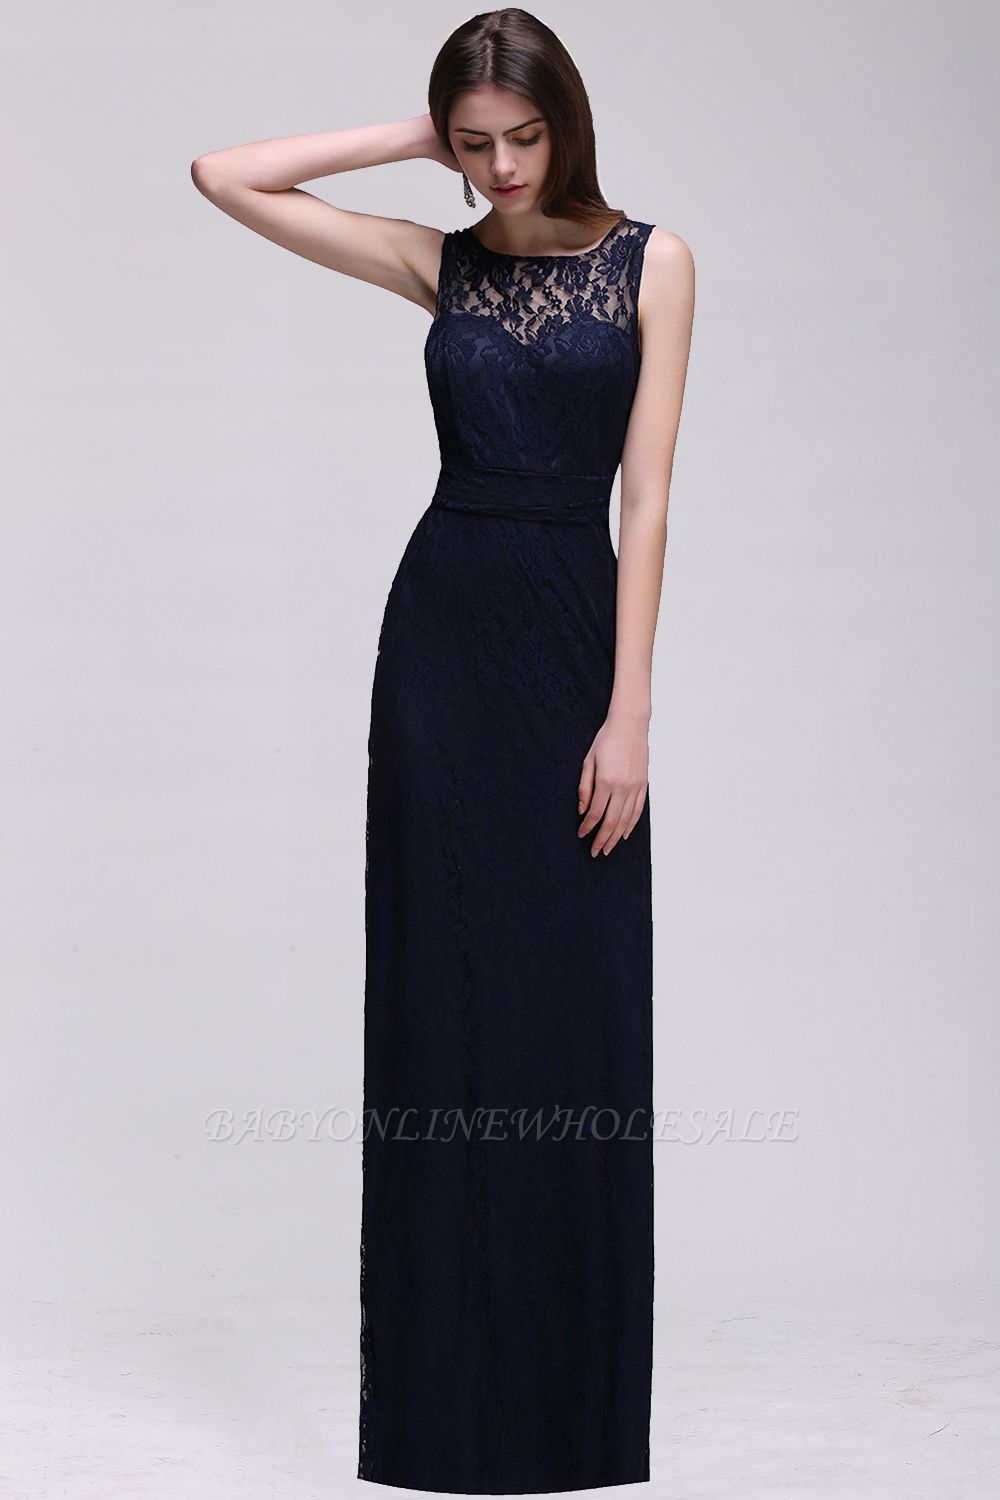 CHARLEY | Sheath Illusion Floor length Elegant Navy Blue Prom Dress